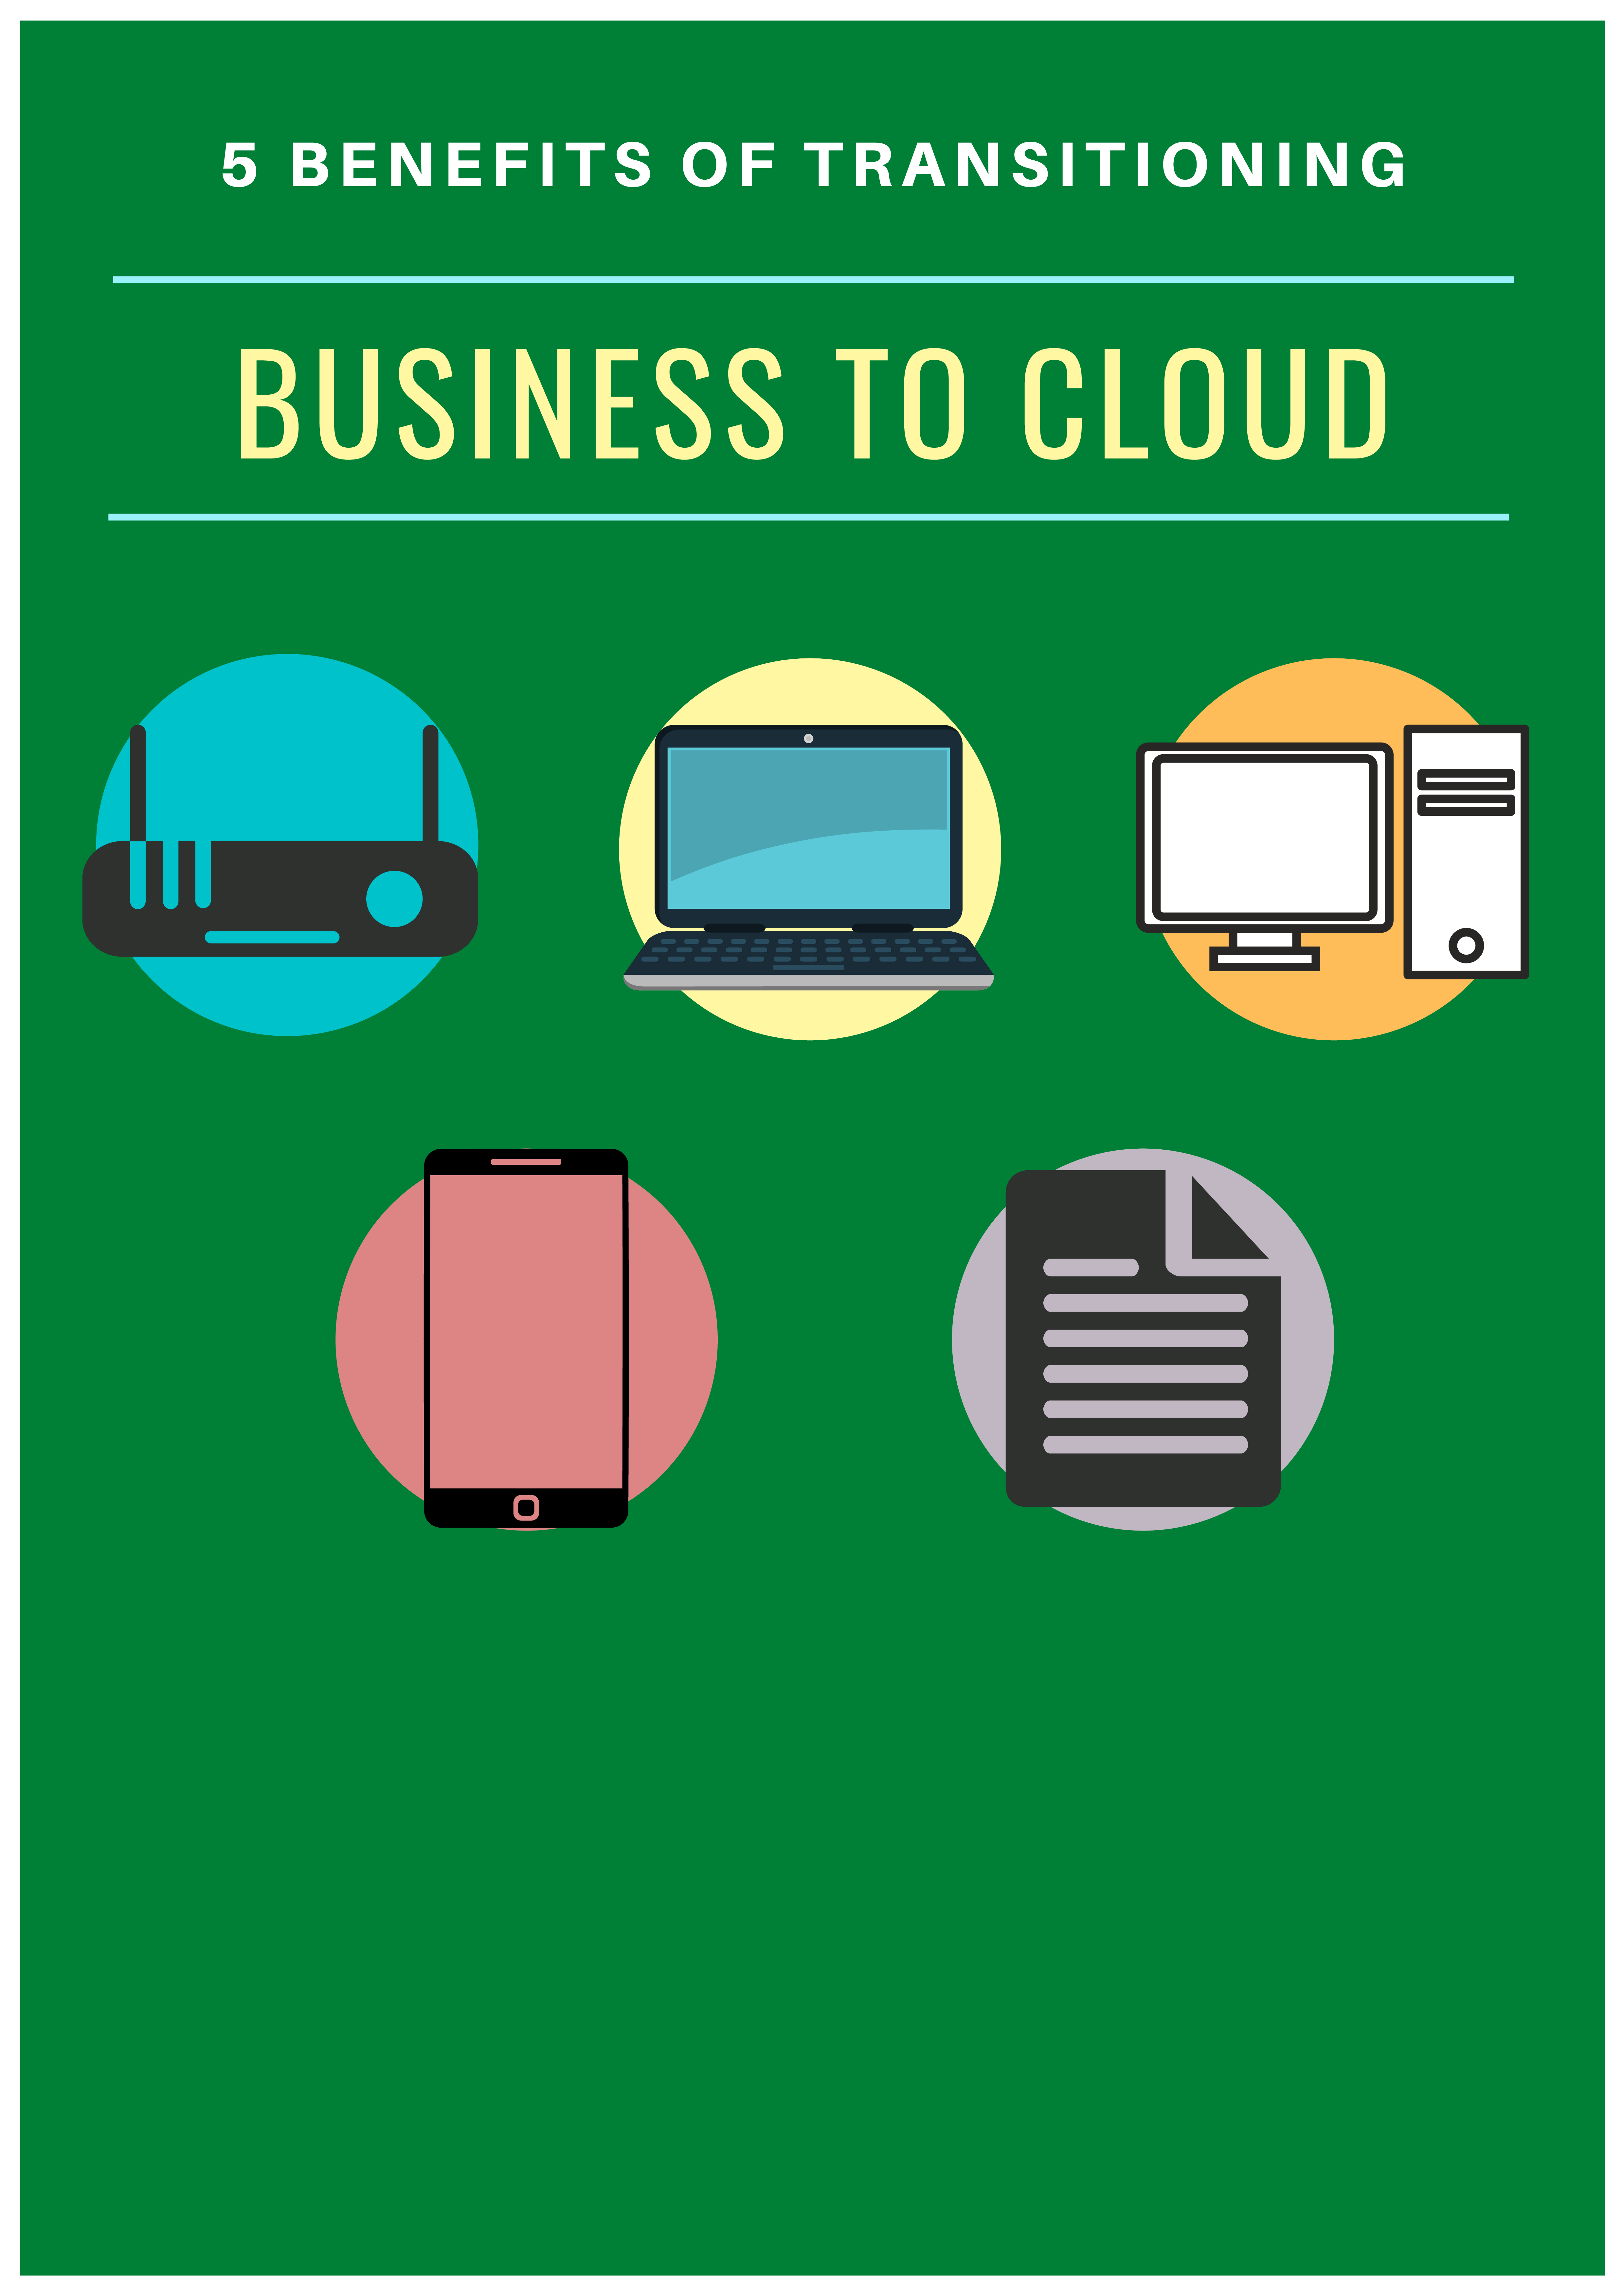 5 Benefits of Transitioning Your Business to the Cloud